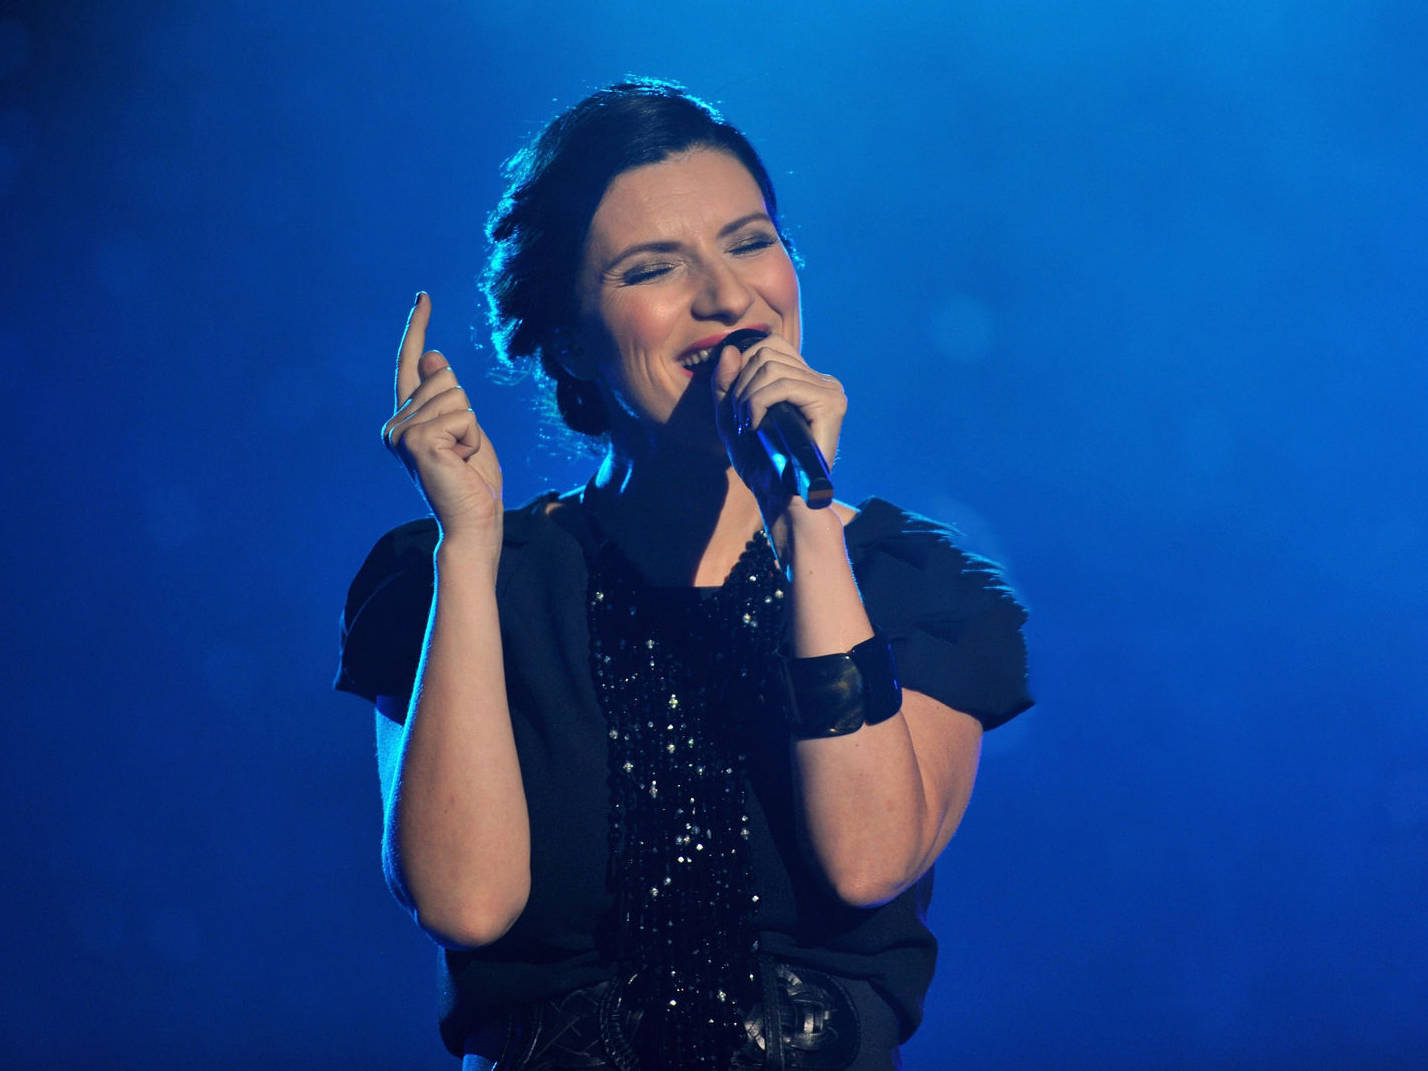 Laura Pausini Person of the year 2013